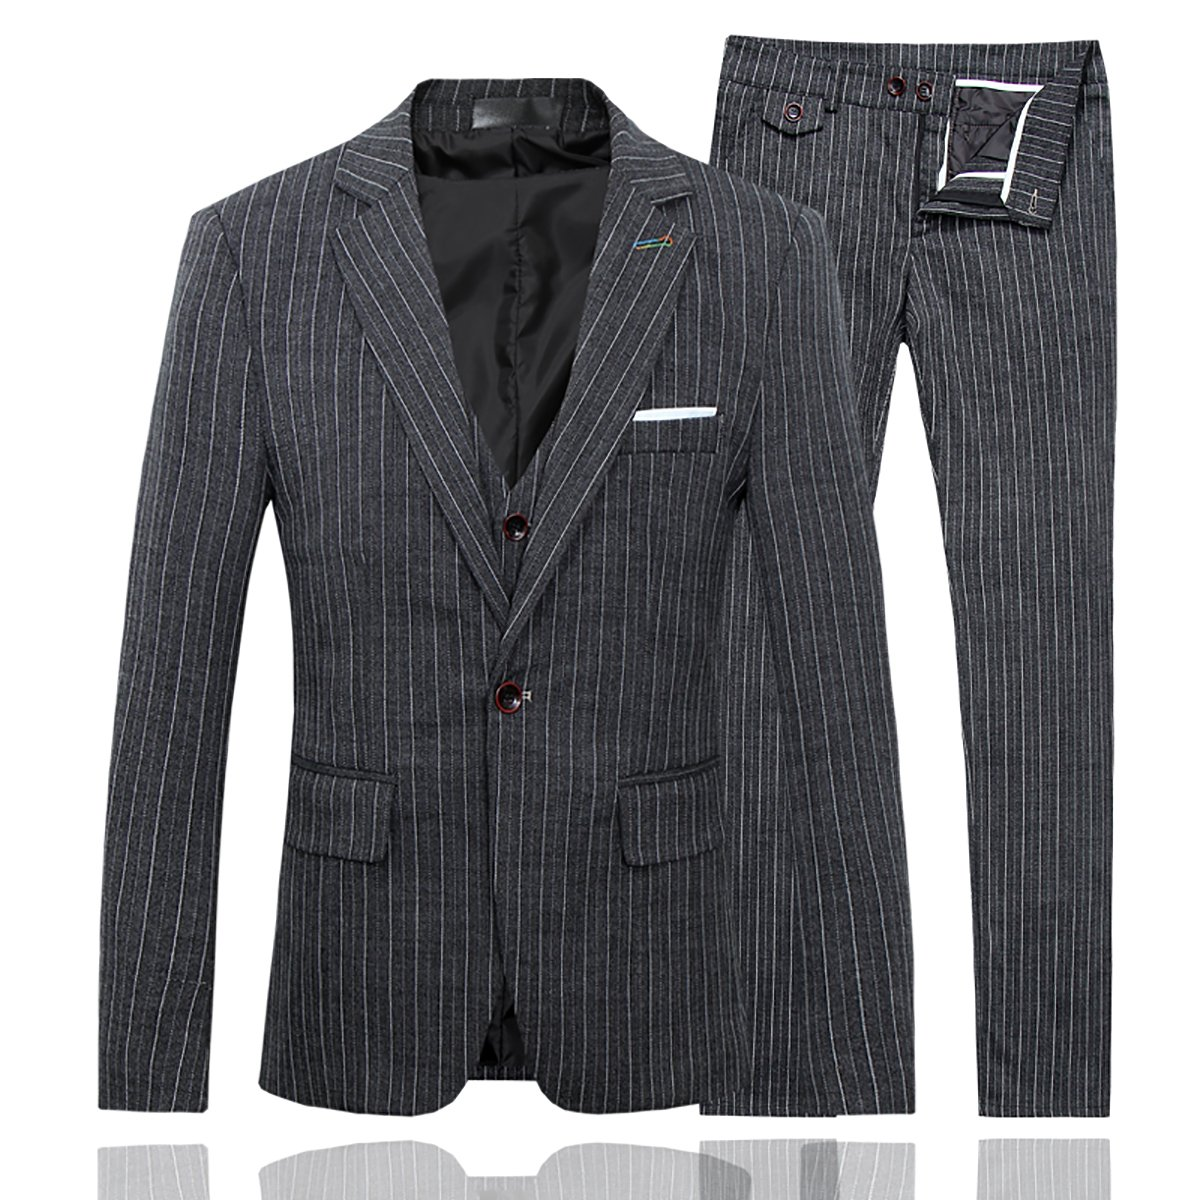 1920s Mens Suits | Gatsby, Gangster, Peaky Blinders Mens Plaid Modern Fit 3-Piece Suit Blazer Jacket Tux Vest & Trousers $82.99 AT vintagedancer.com